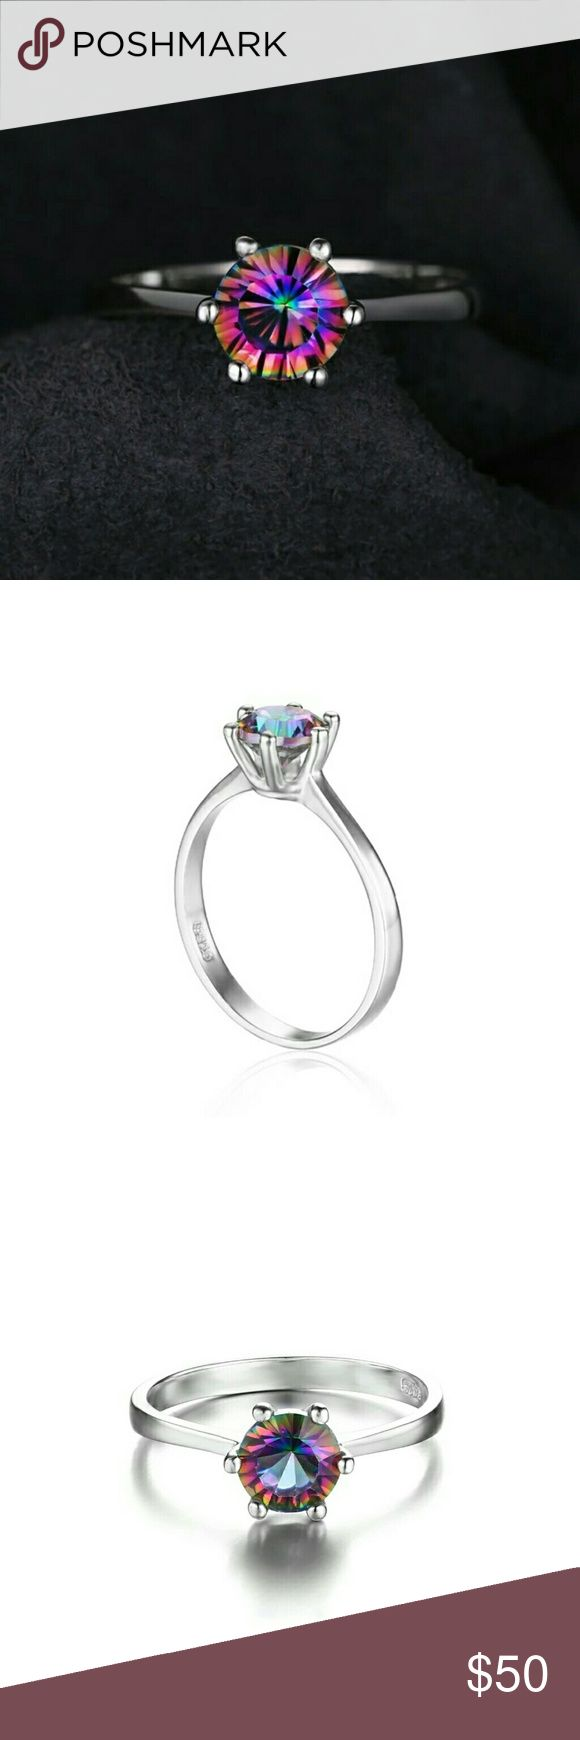 This Just In! 1 Ct Mystic Fire Topaz Ring in S925 She's just arrived today and yes, she's just as beautiful as everything I get from my jewelry store!  1ctw Mystic fire Topaz with a 6 prong setting in solid Sterling Silver. Purchaser is welcome to the COA for their own purpose. JP Jewelry Rings